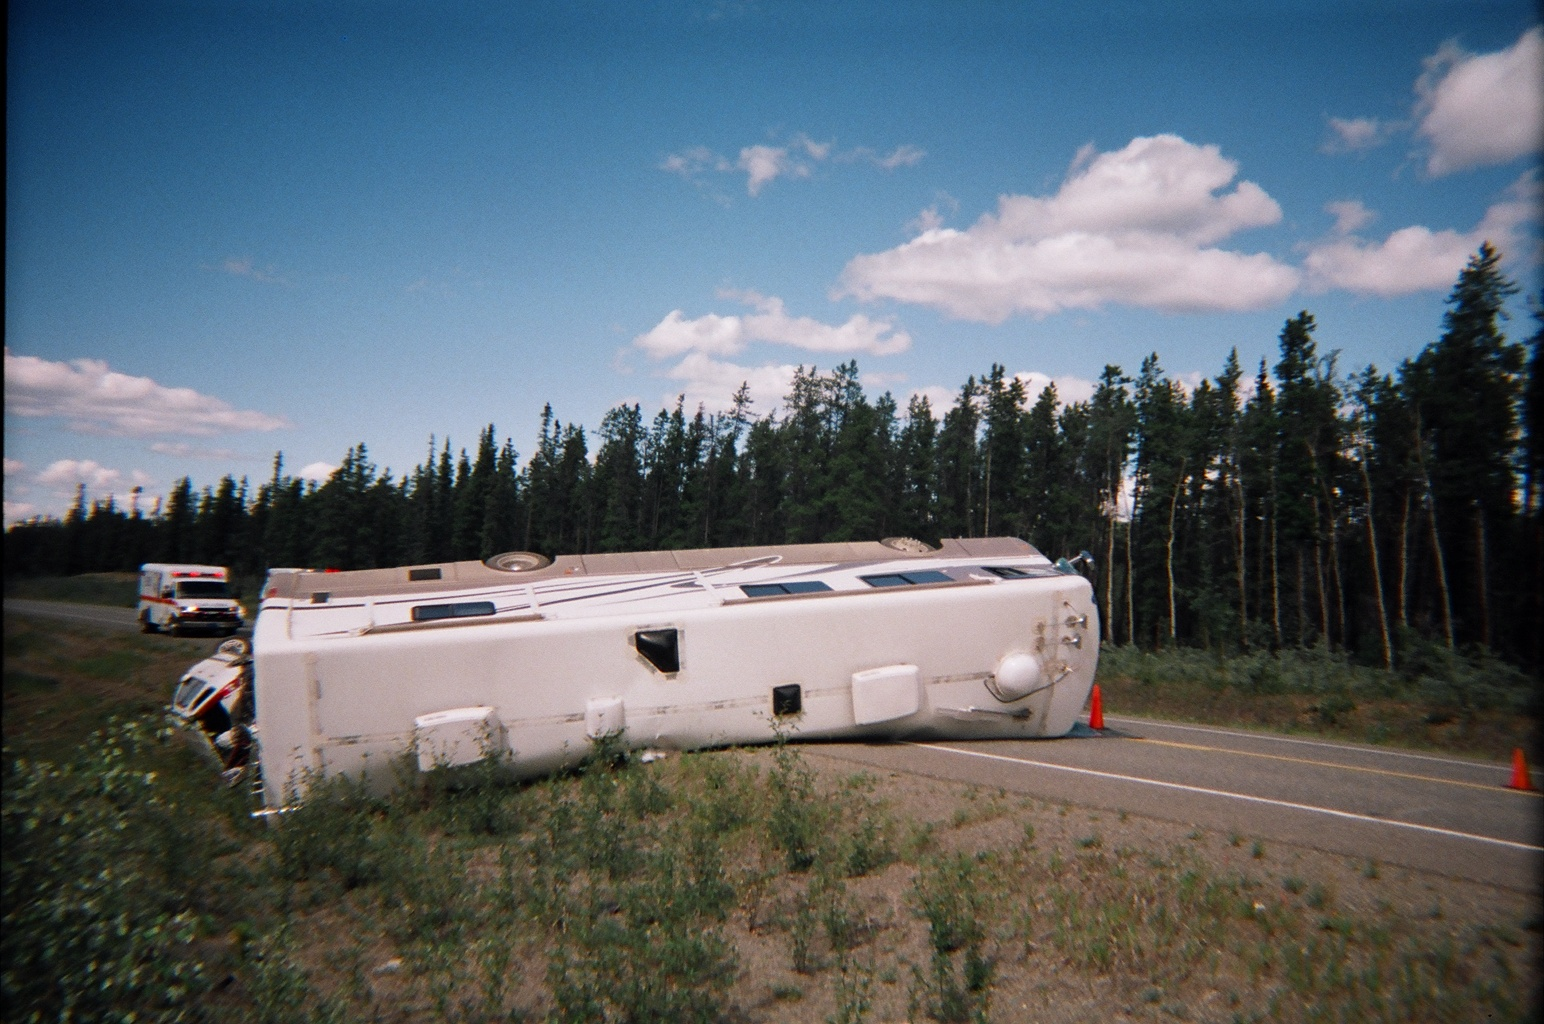 The motorhome swerved in the ditch, but wasn't able to prevent itself from tipping over.